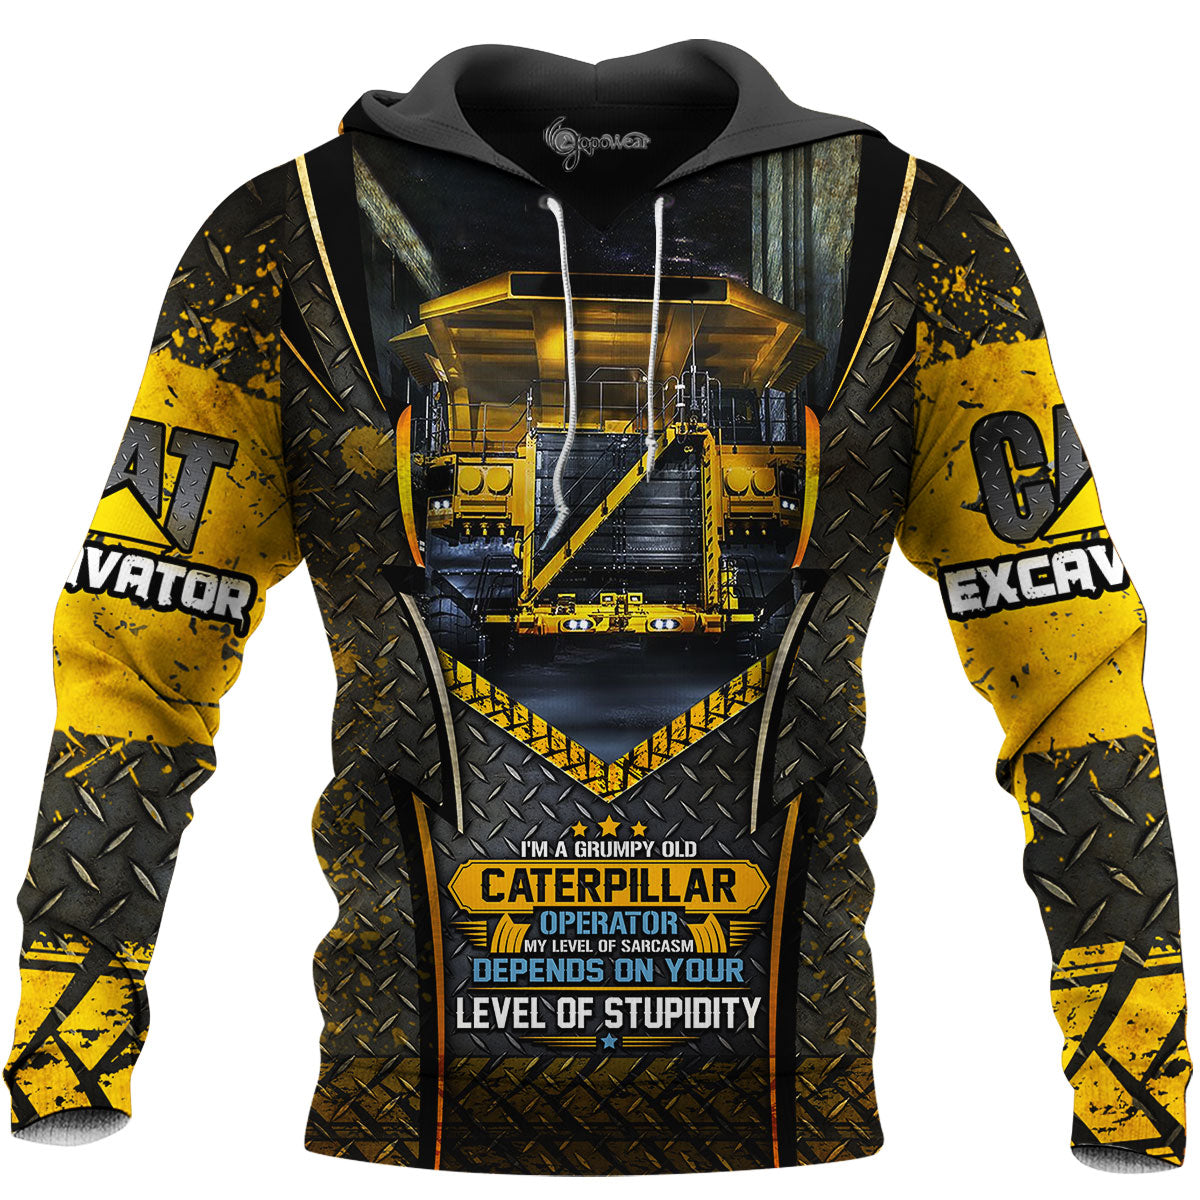 Gopowear Job_Heavy-Equipment_SHO0810915_3d_hoodie.jpg